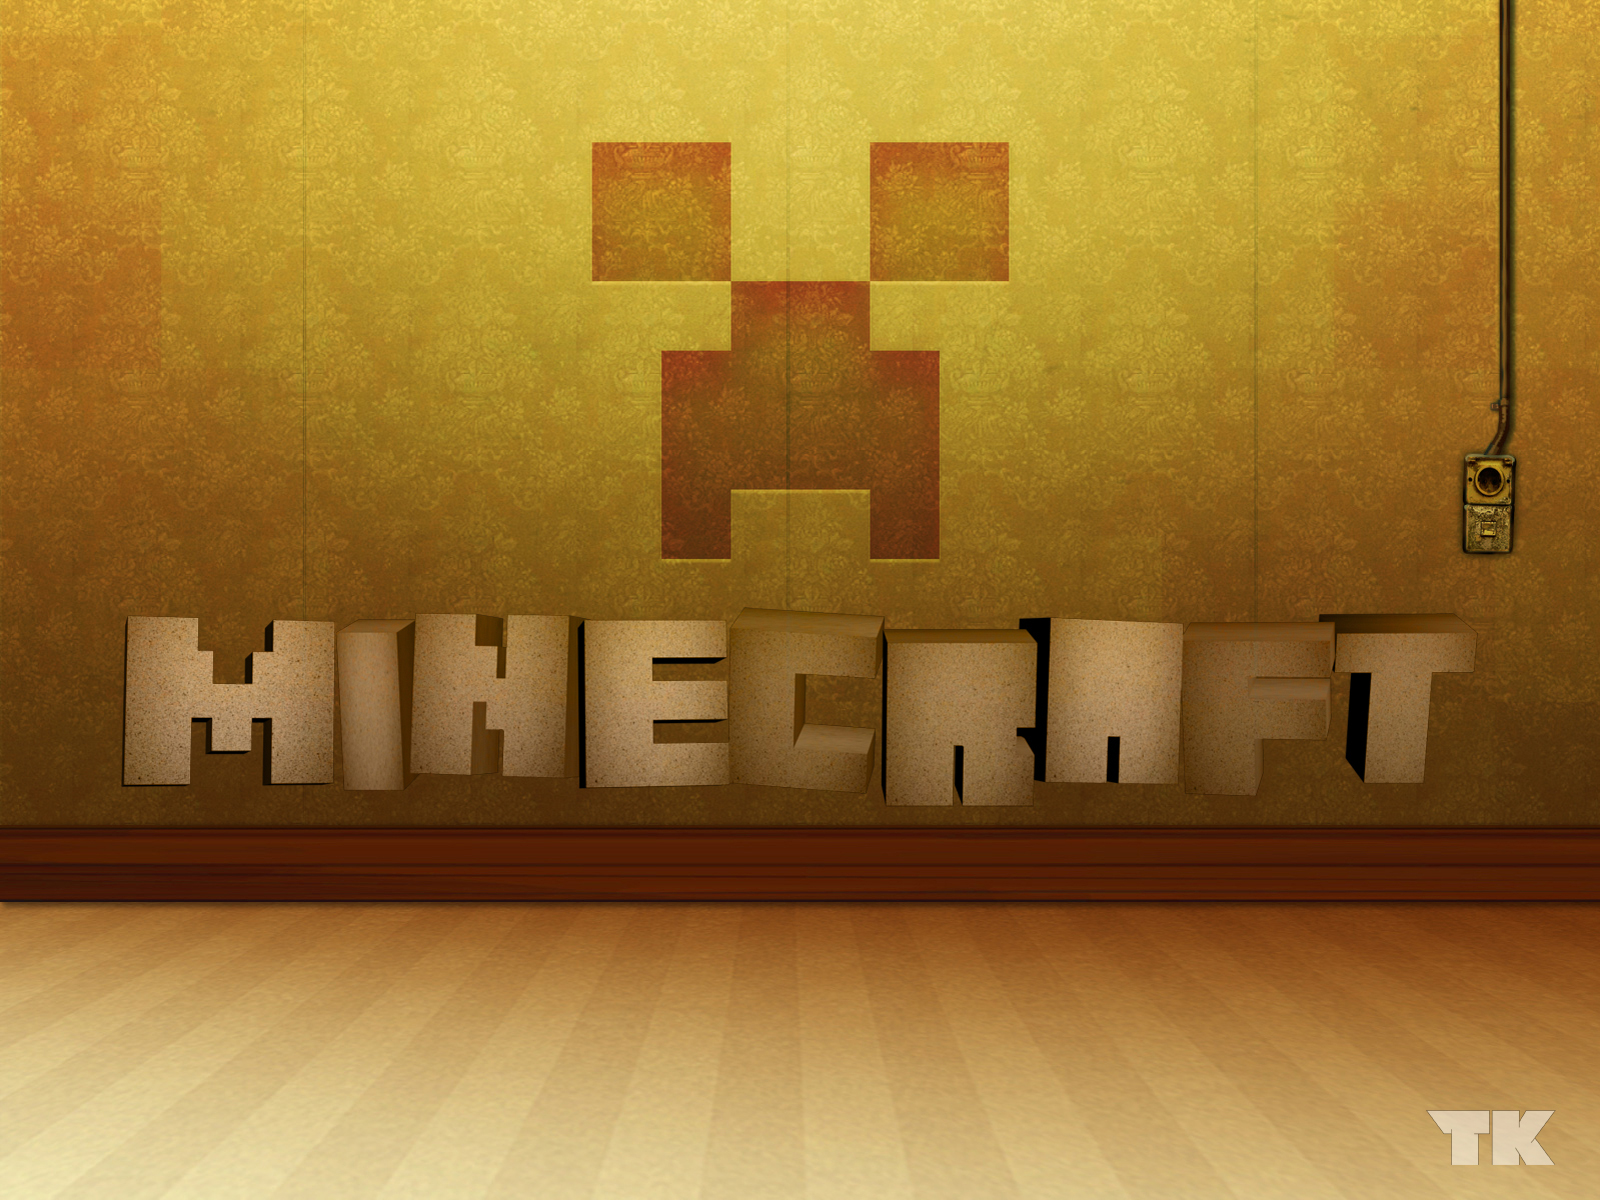 Cool Wallpaper Minecraft Gold - Wallpaper  You Should Have_30812.jpg